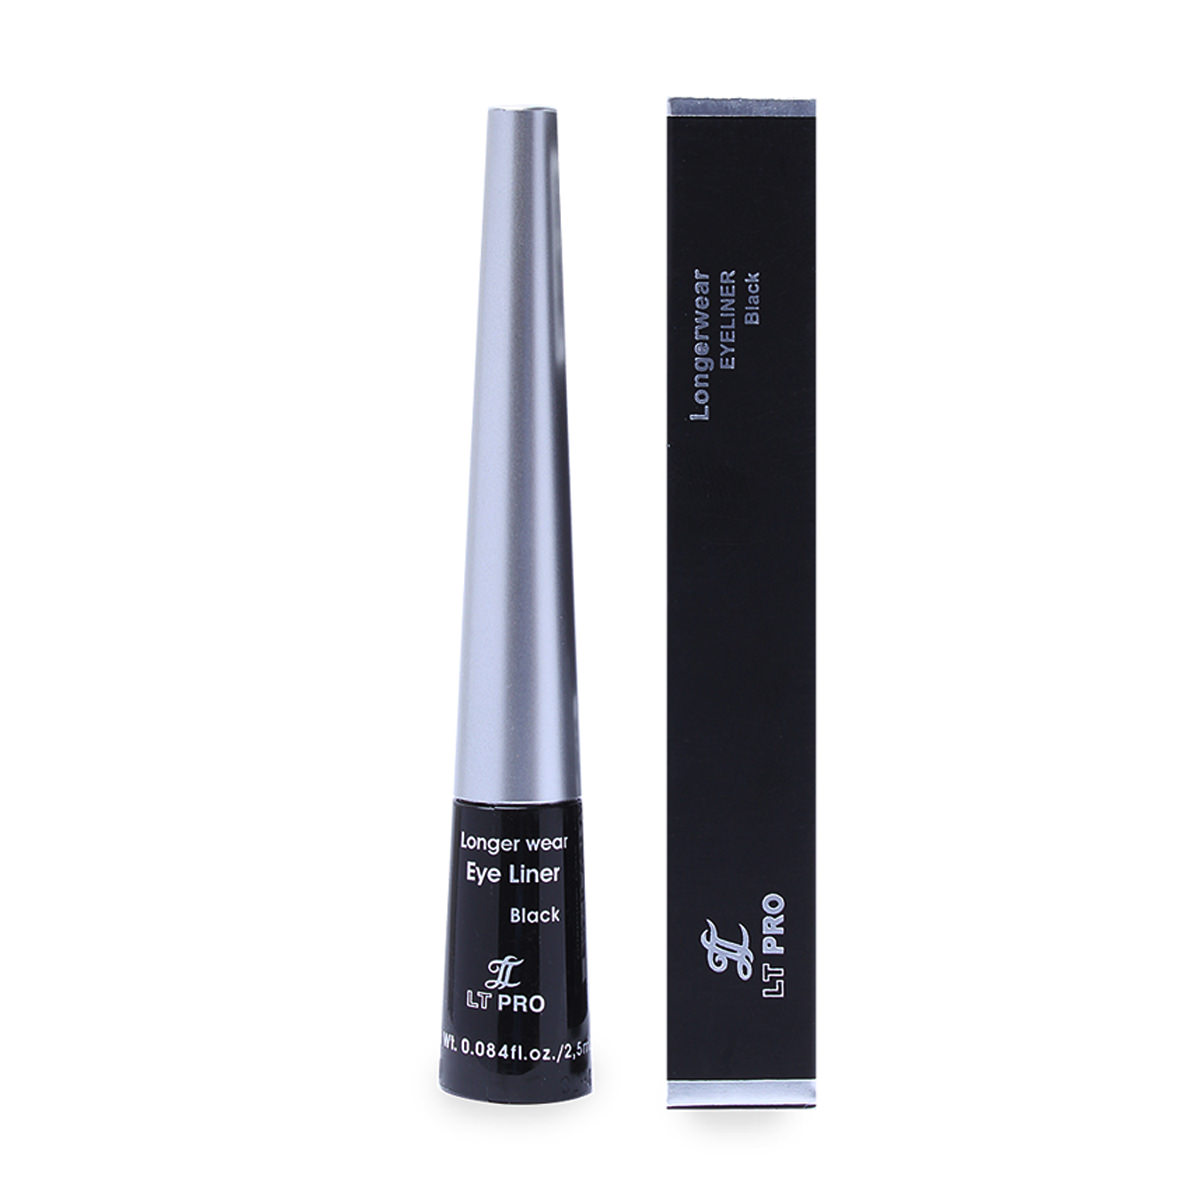 Longer-Wear-Eye-Liner-Liquid-Black-p-sfw(1)